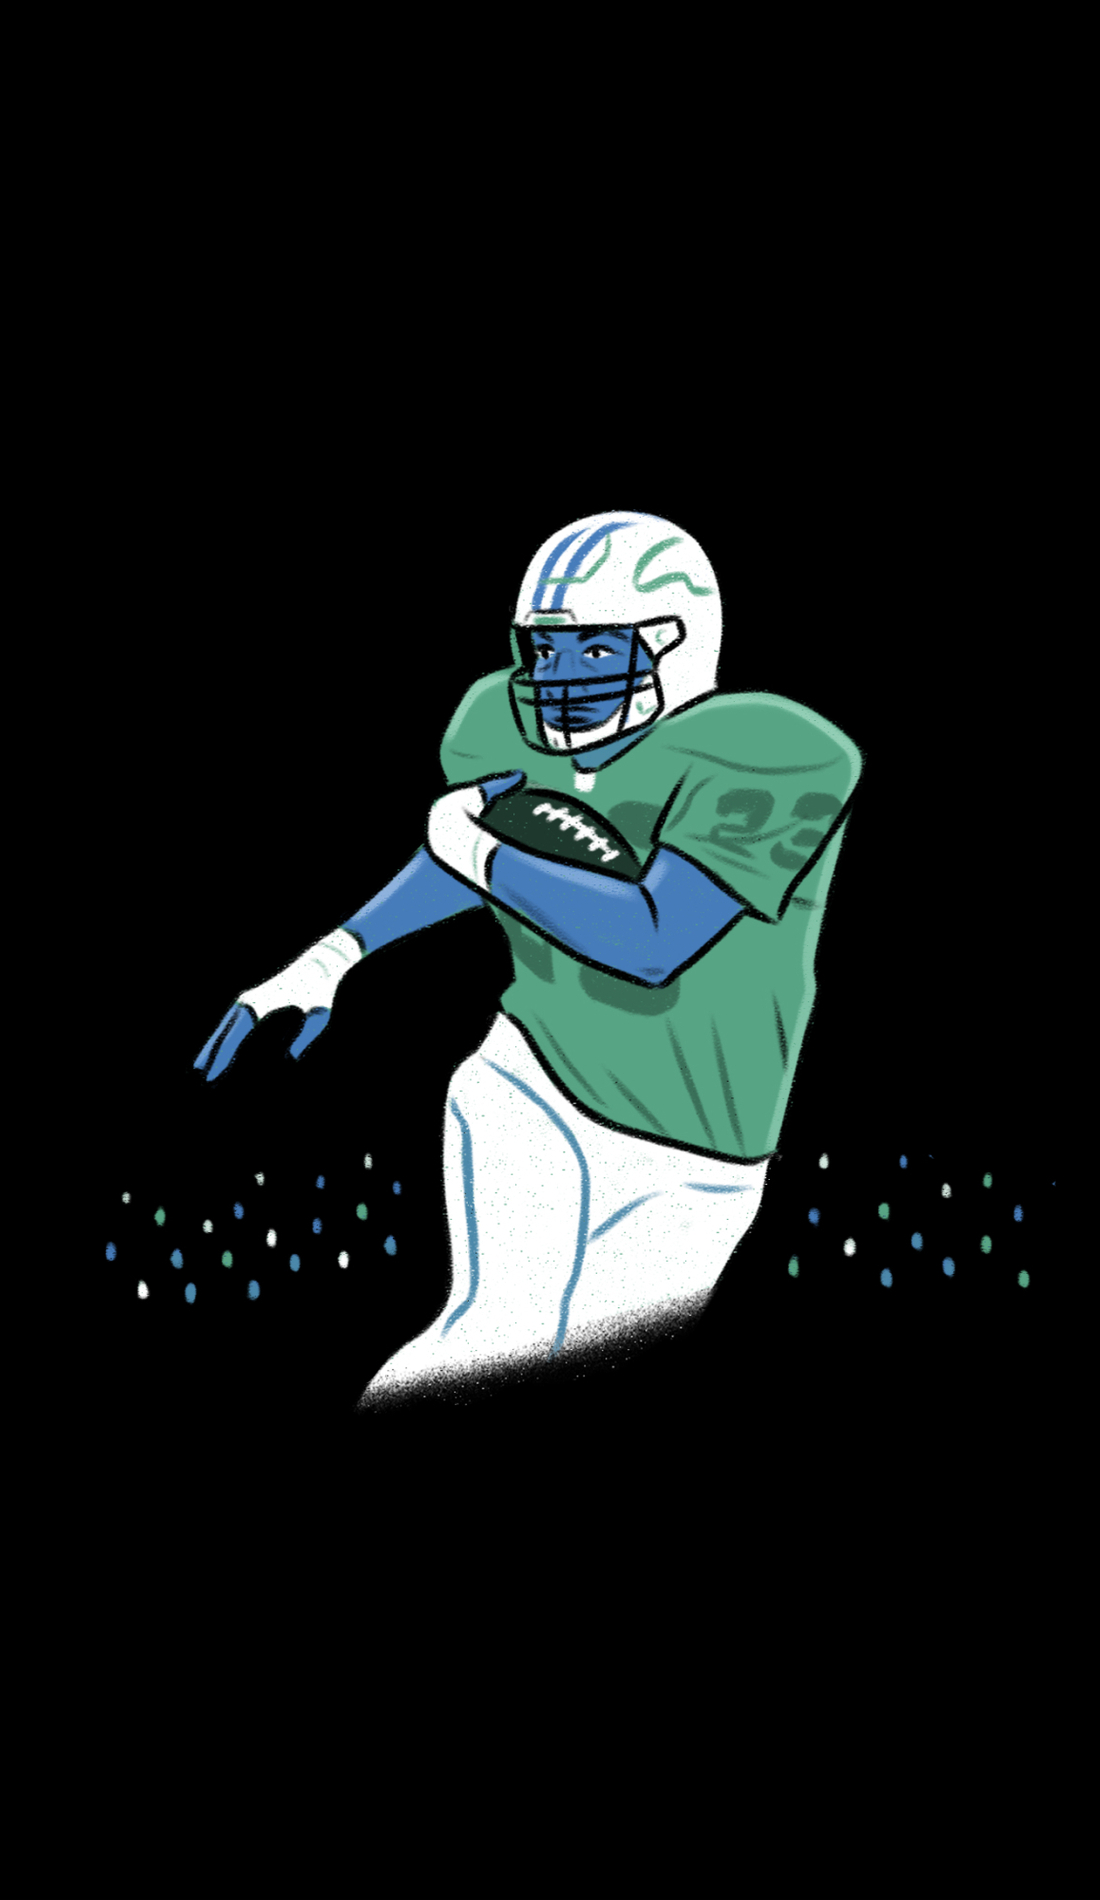 A Bowling Green Falcons Football live event